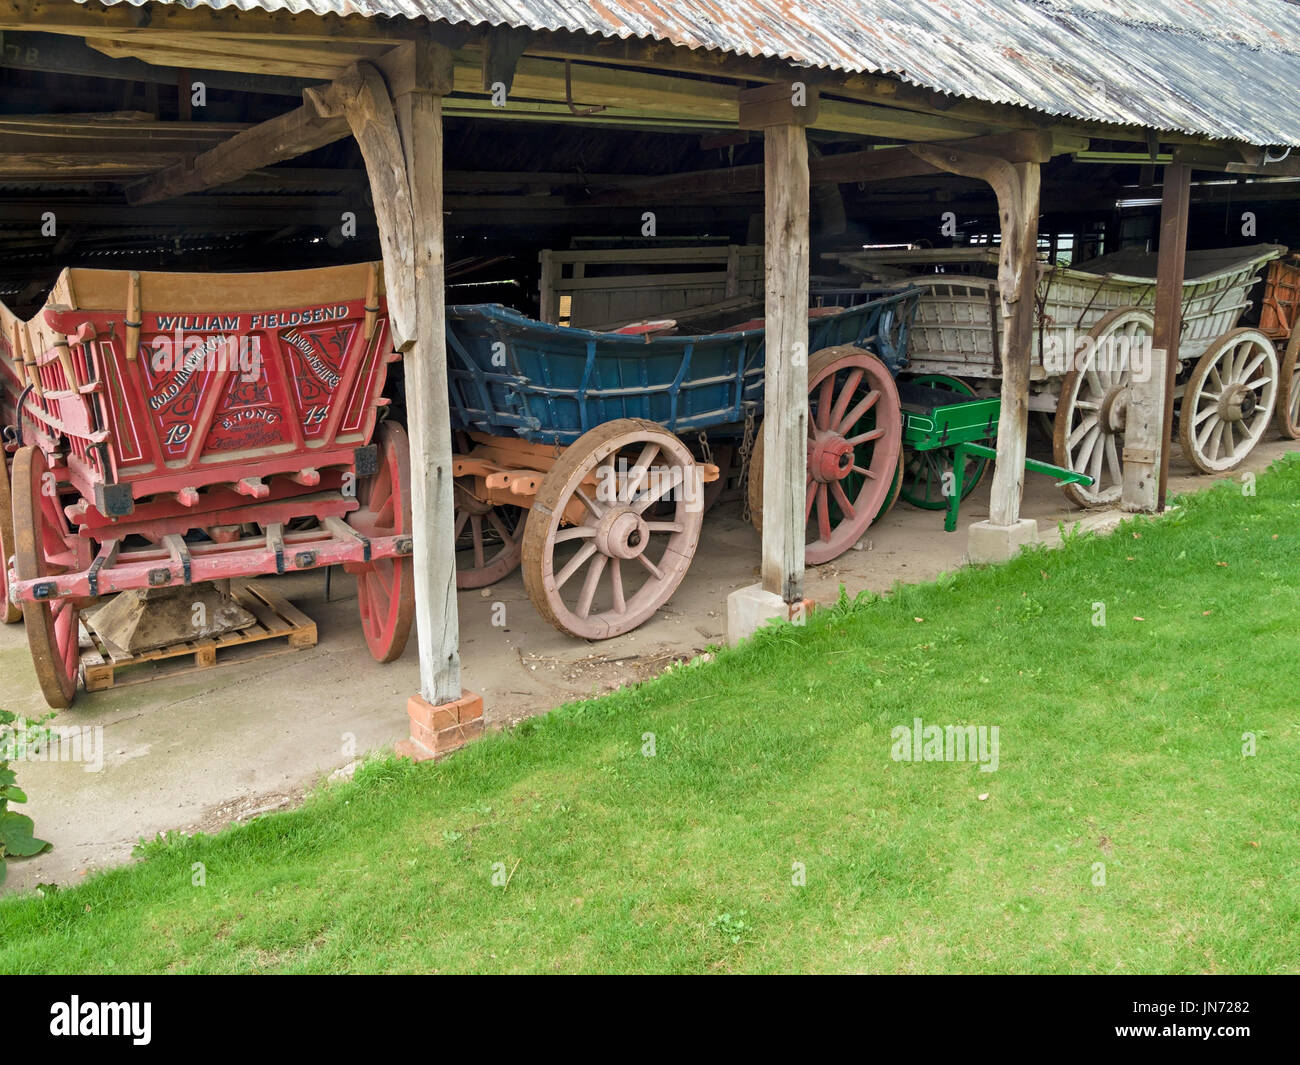 Old wooden horse-drawn farm wagon carts in old barn at ...